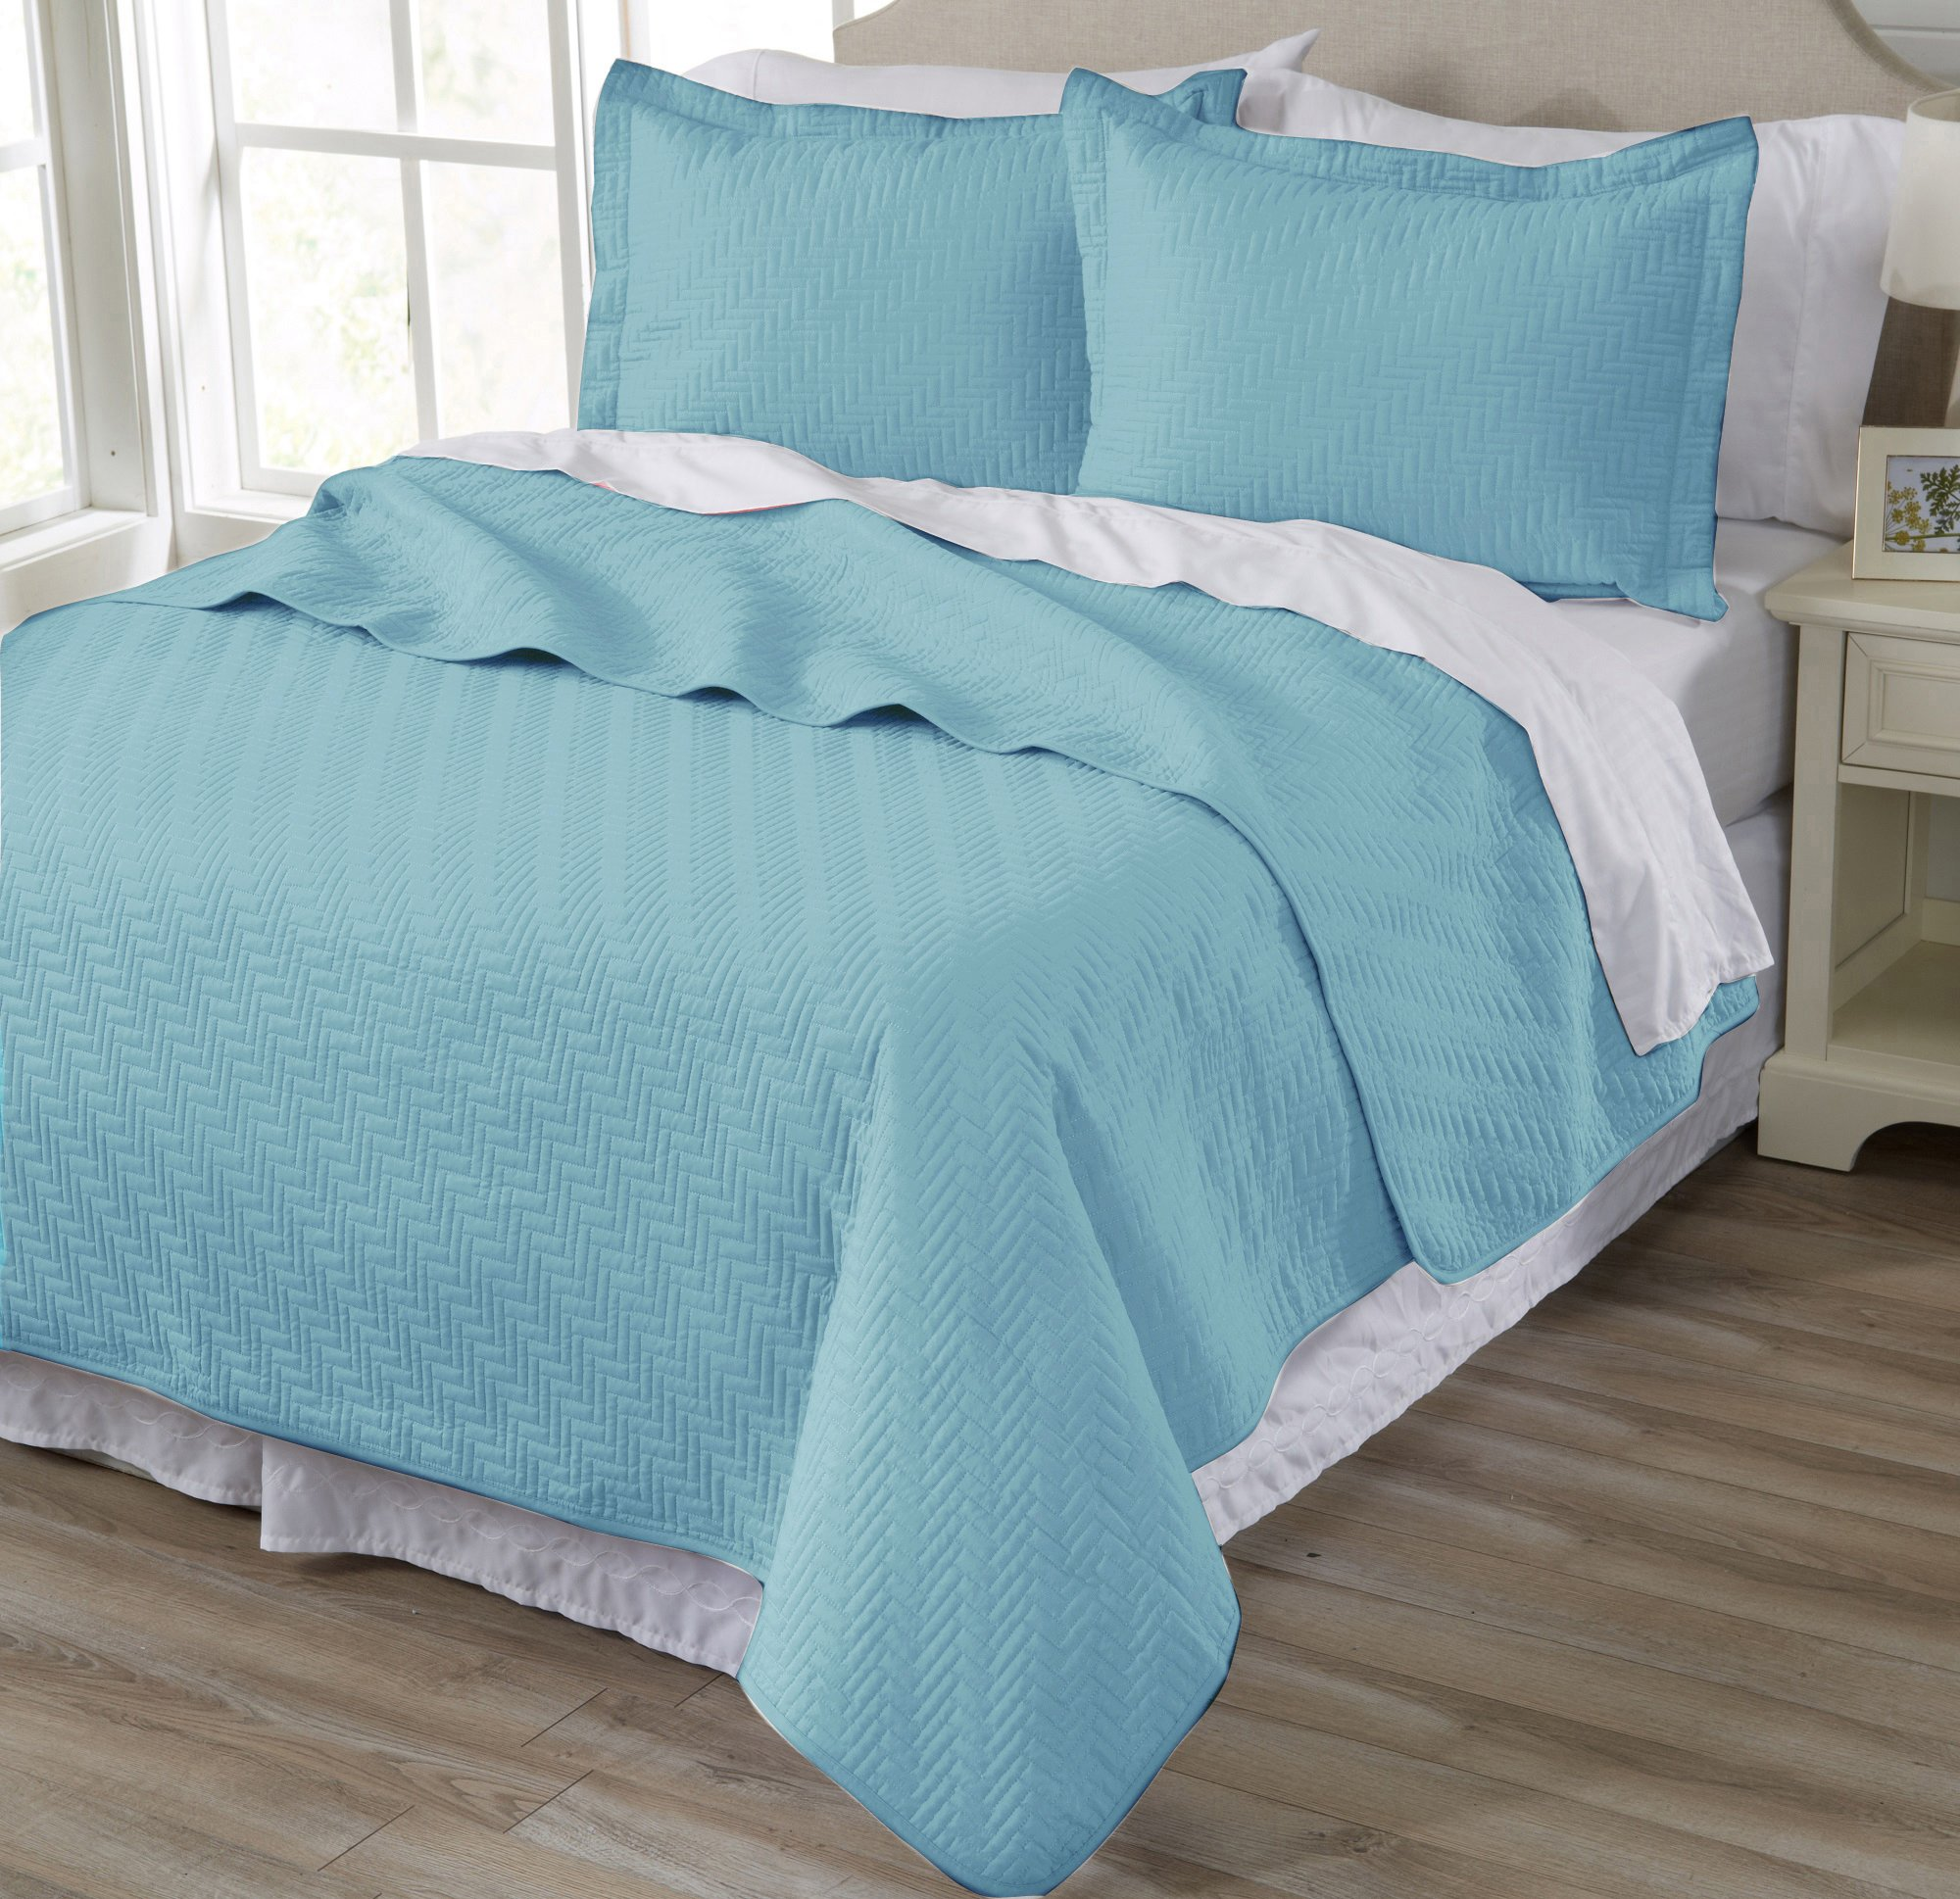 Home Fashion Designs 3-Piece Luxury Quilt Set with Shams. Soft All-Season Microfiber Bedspread and Coverlet in Solid Colors. Emerson Collection Brand. (King, Nile Blue)